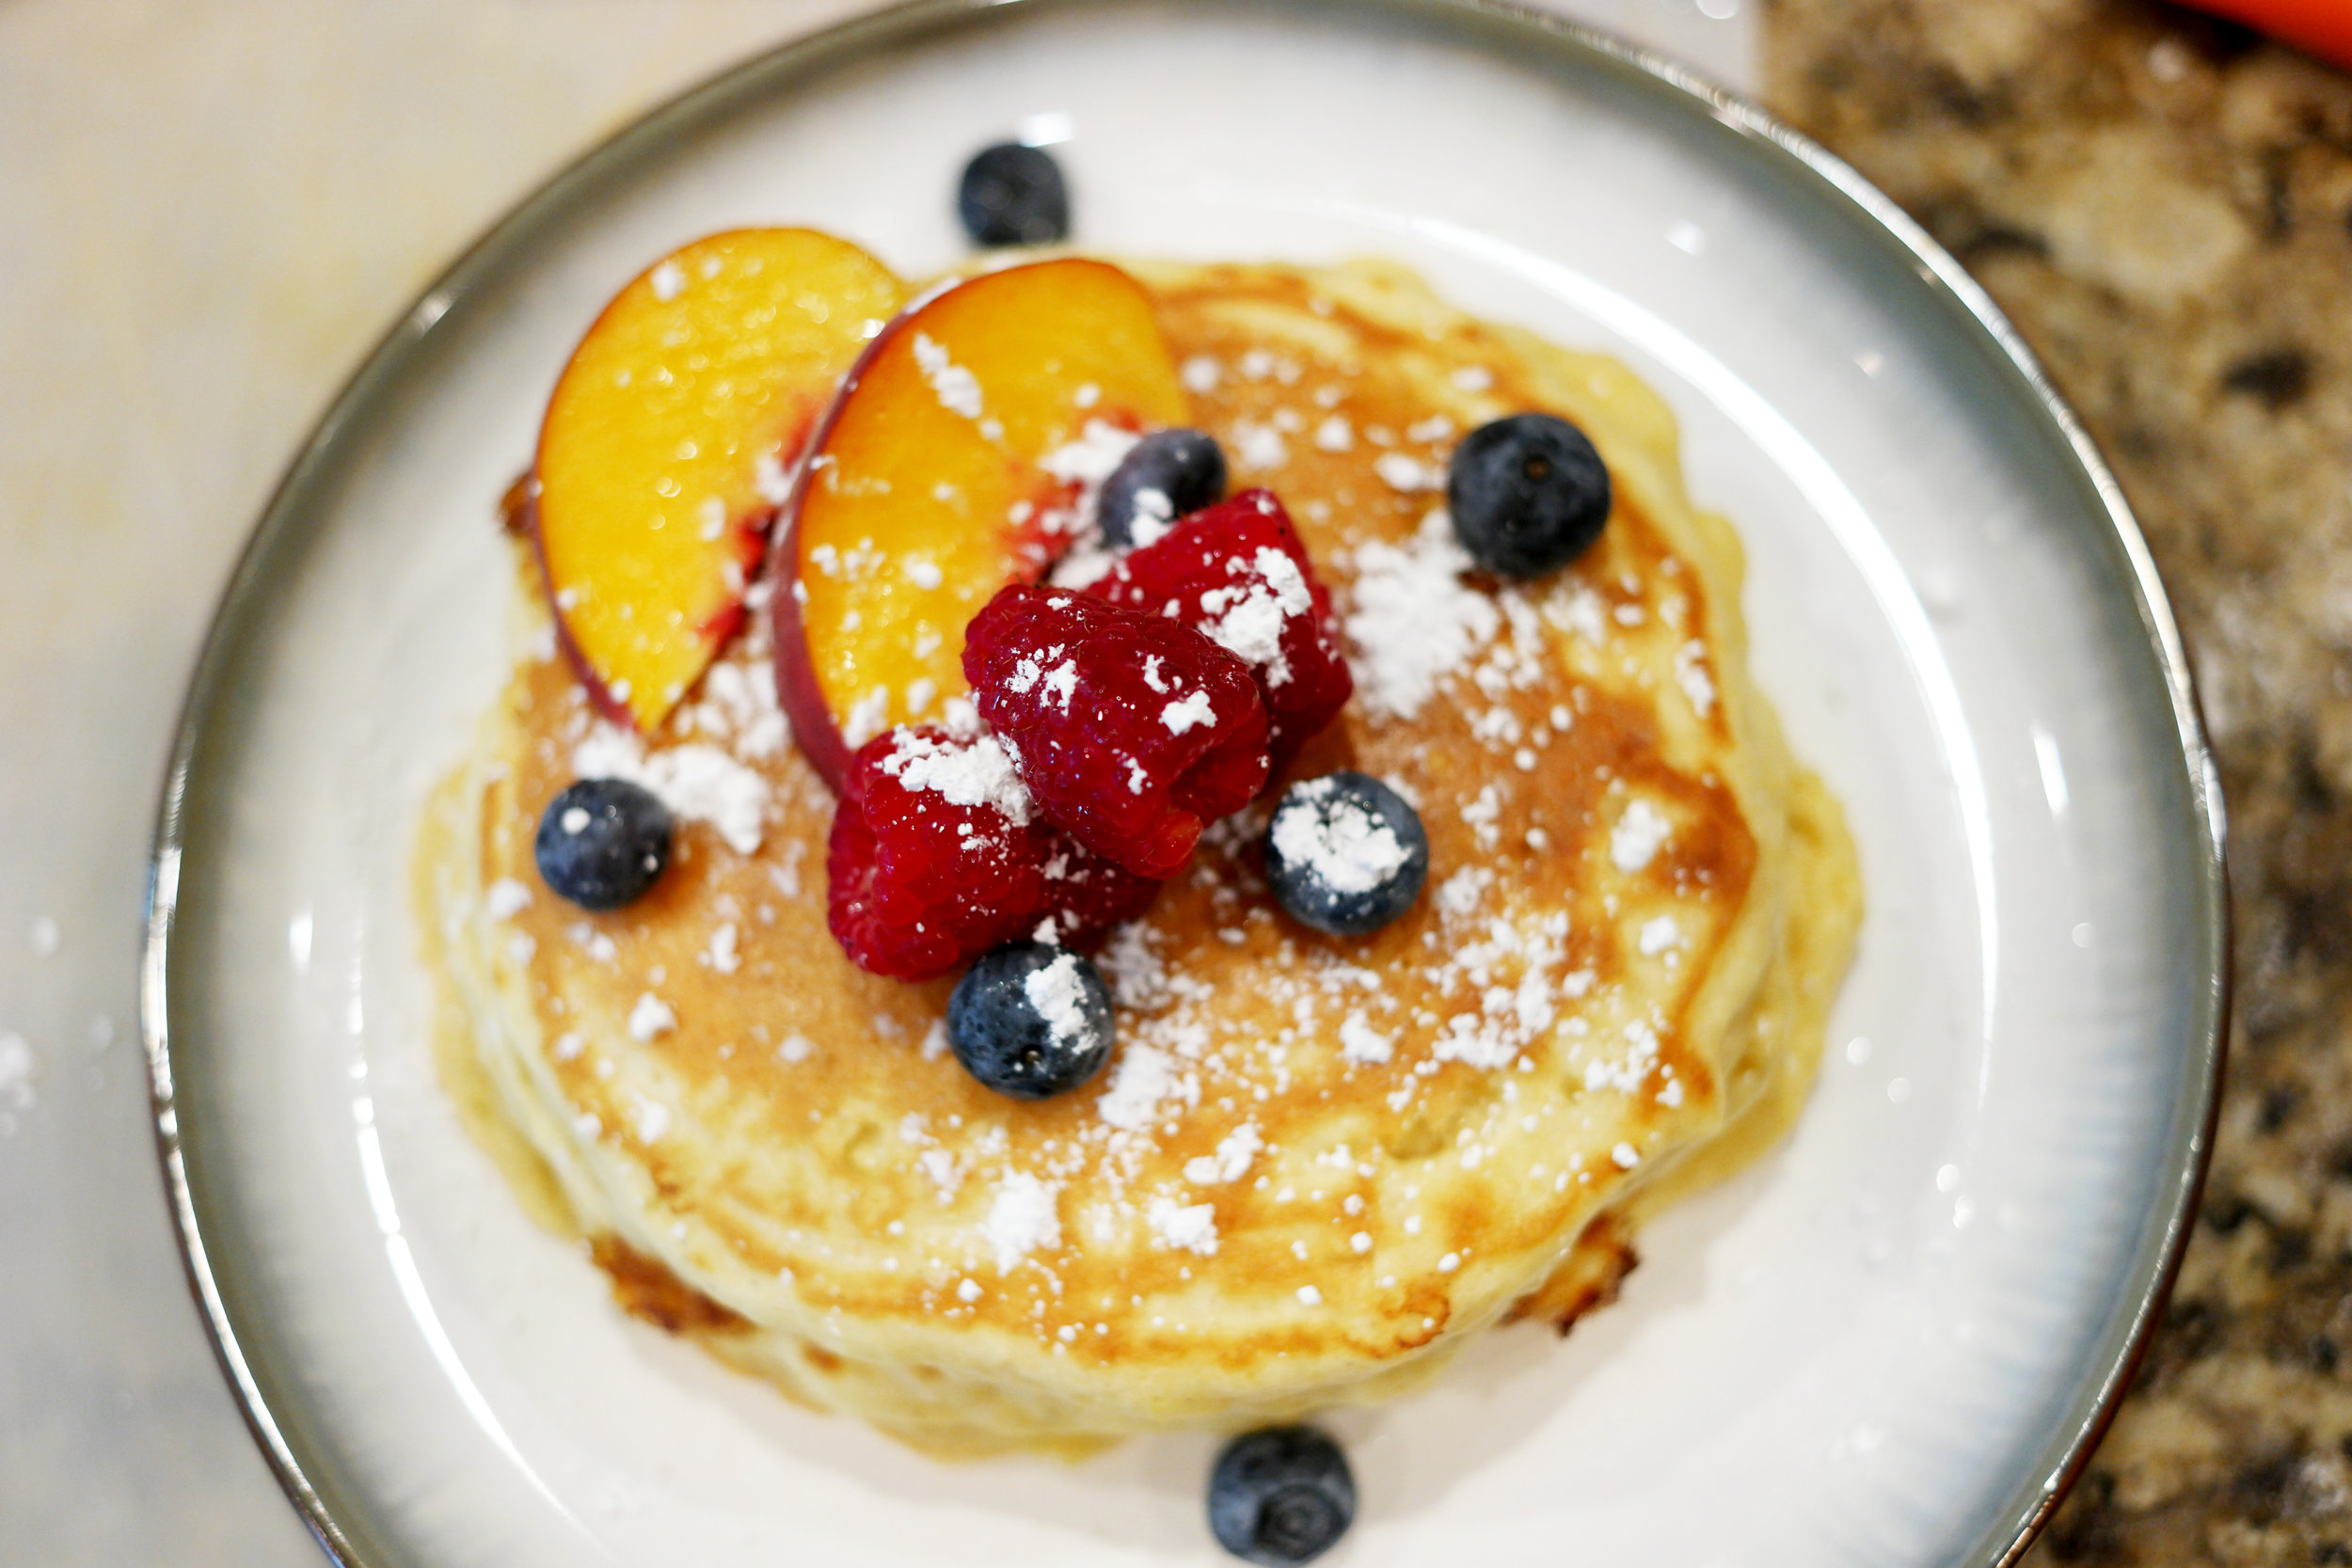 Pic of pancakes with peaches/raspberries for me